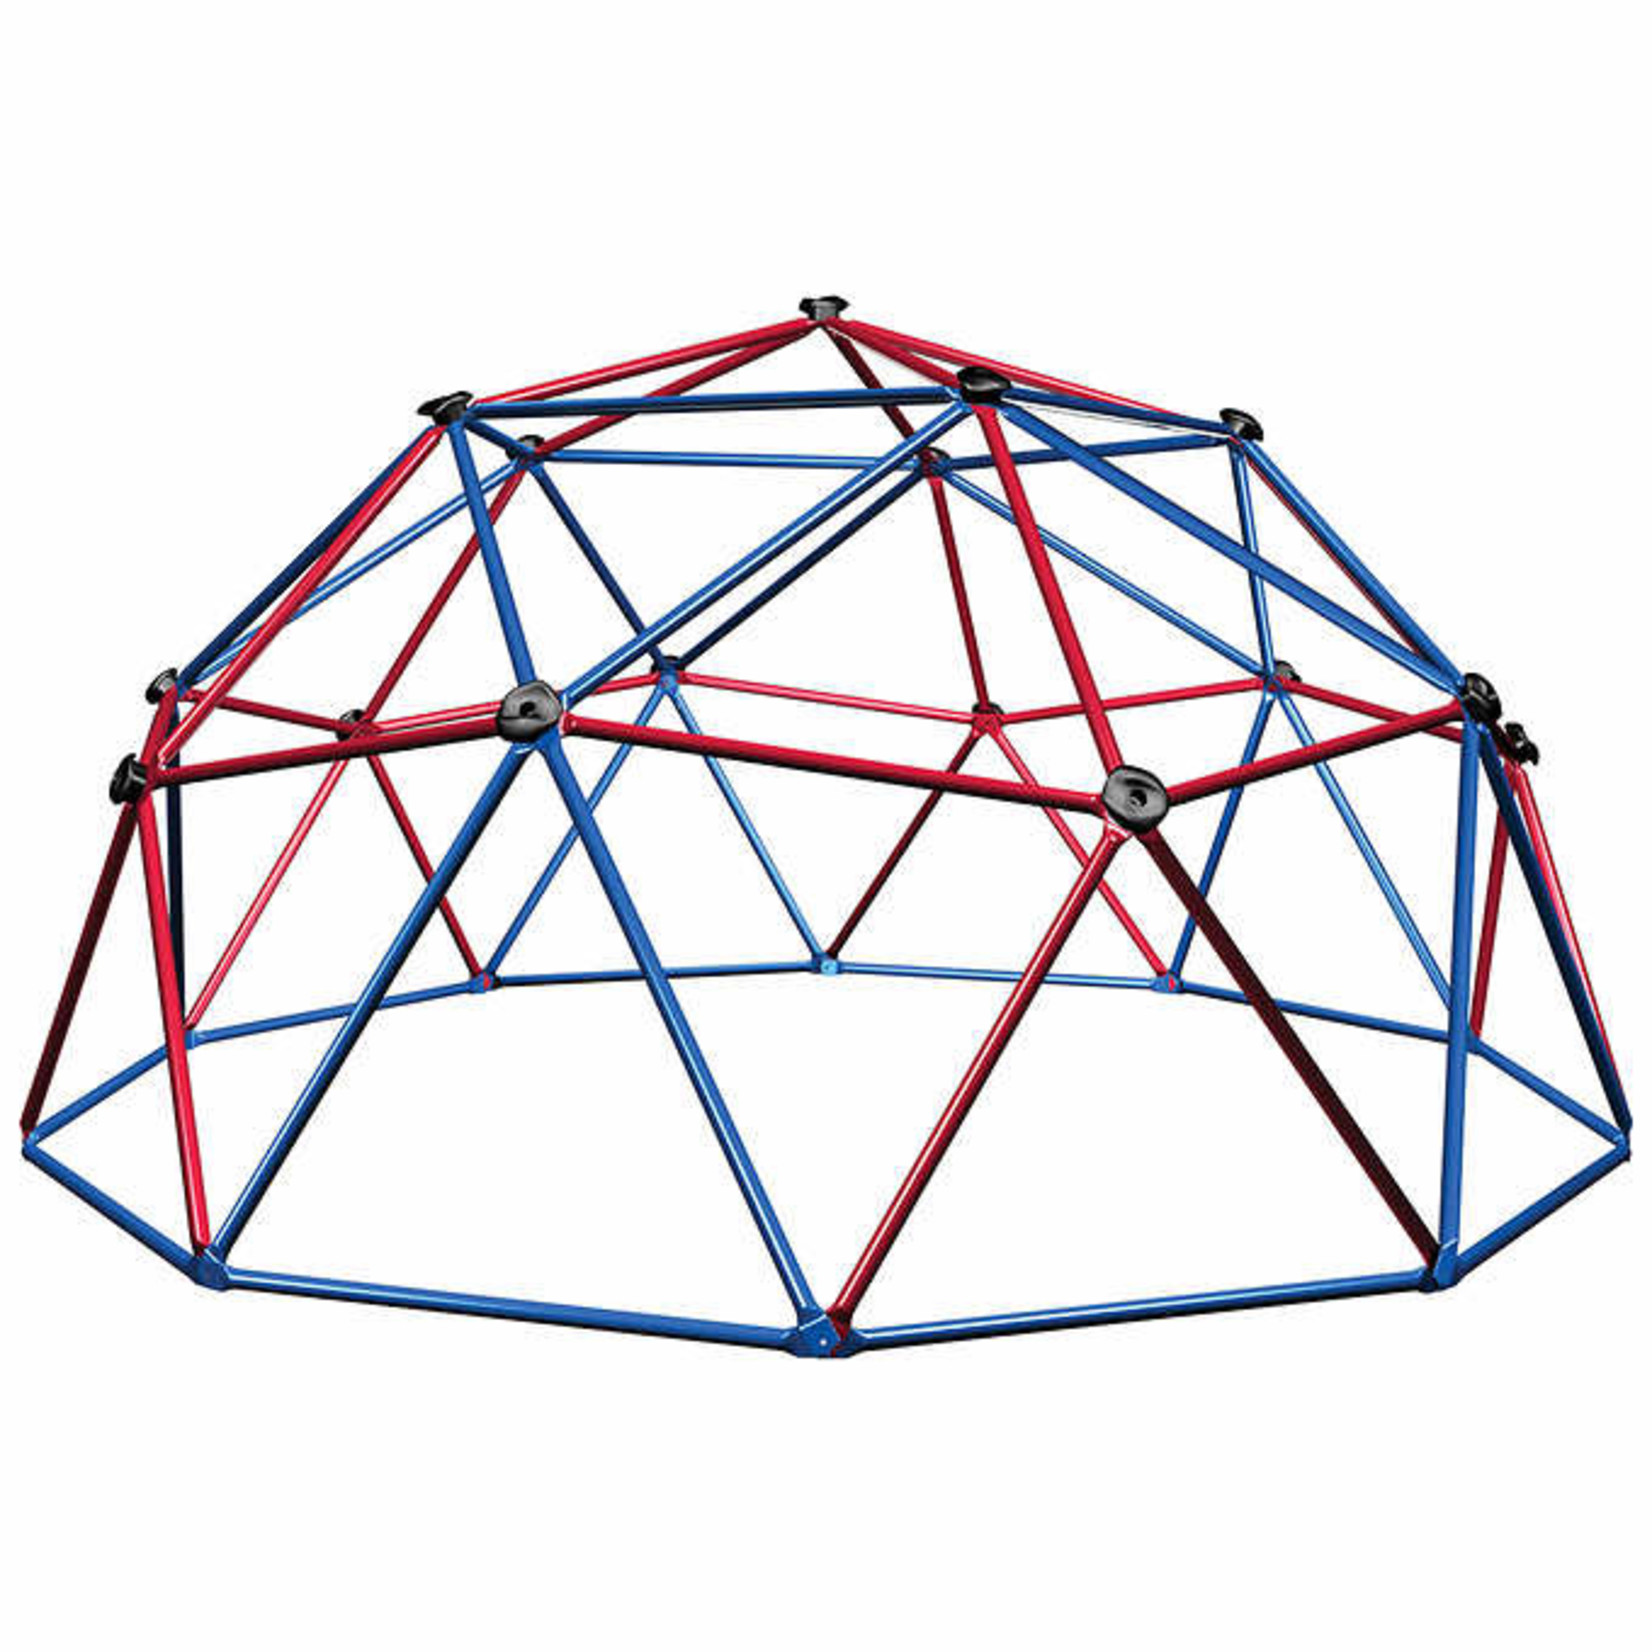 Lifetime Geometric Dome Climber *Open box, lightly used, missing 8 bolt covers